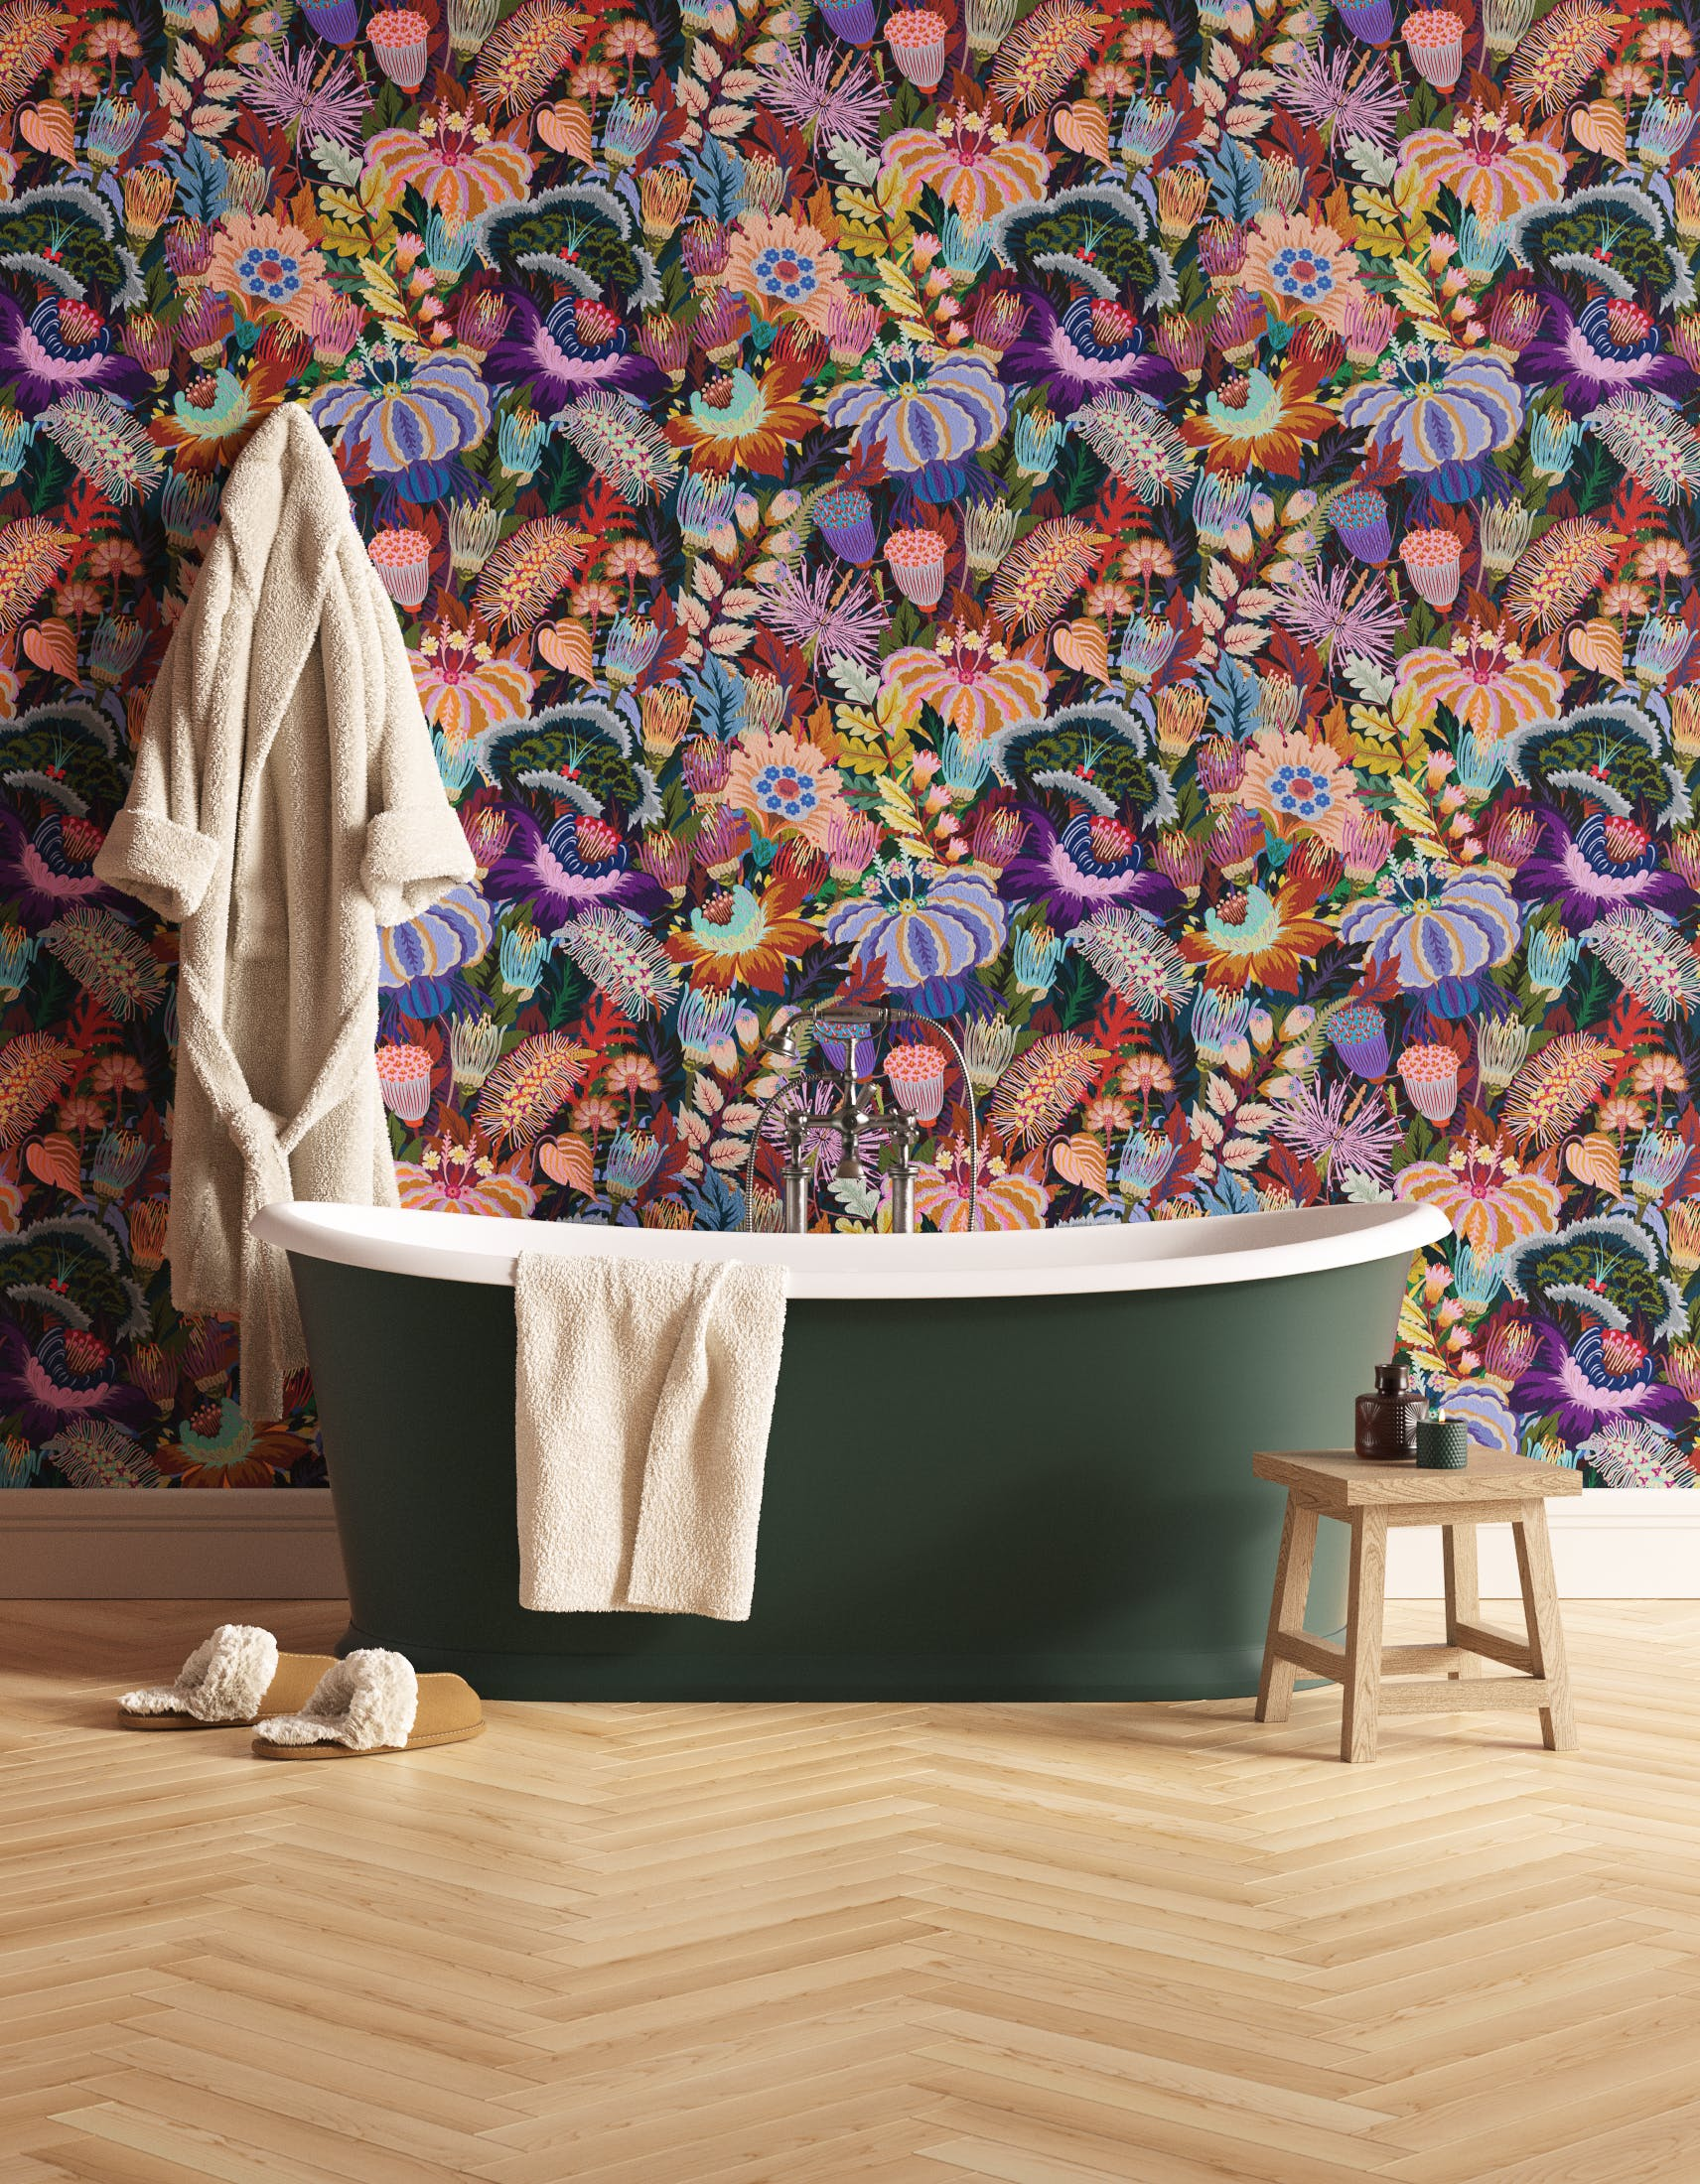 Bathroom decorated with Lick Mars Meadow 01, a dark green floral wallpaper